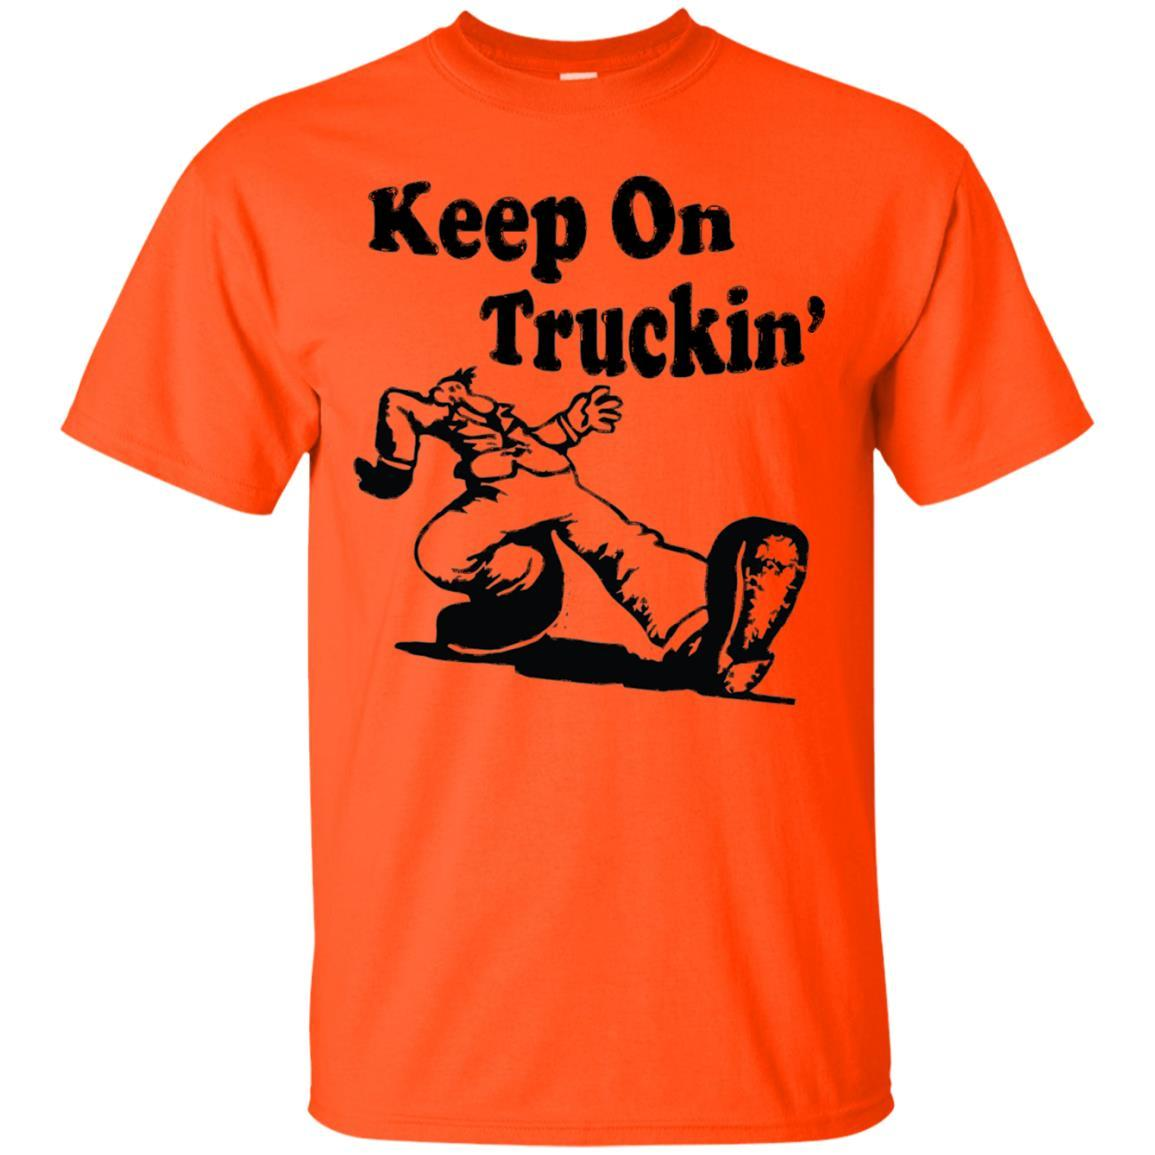 Iconic Keep On Truckin' Tshirt Orange / 5XL